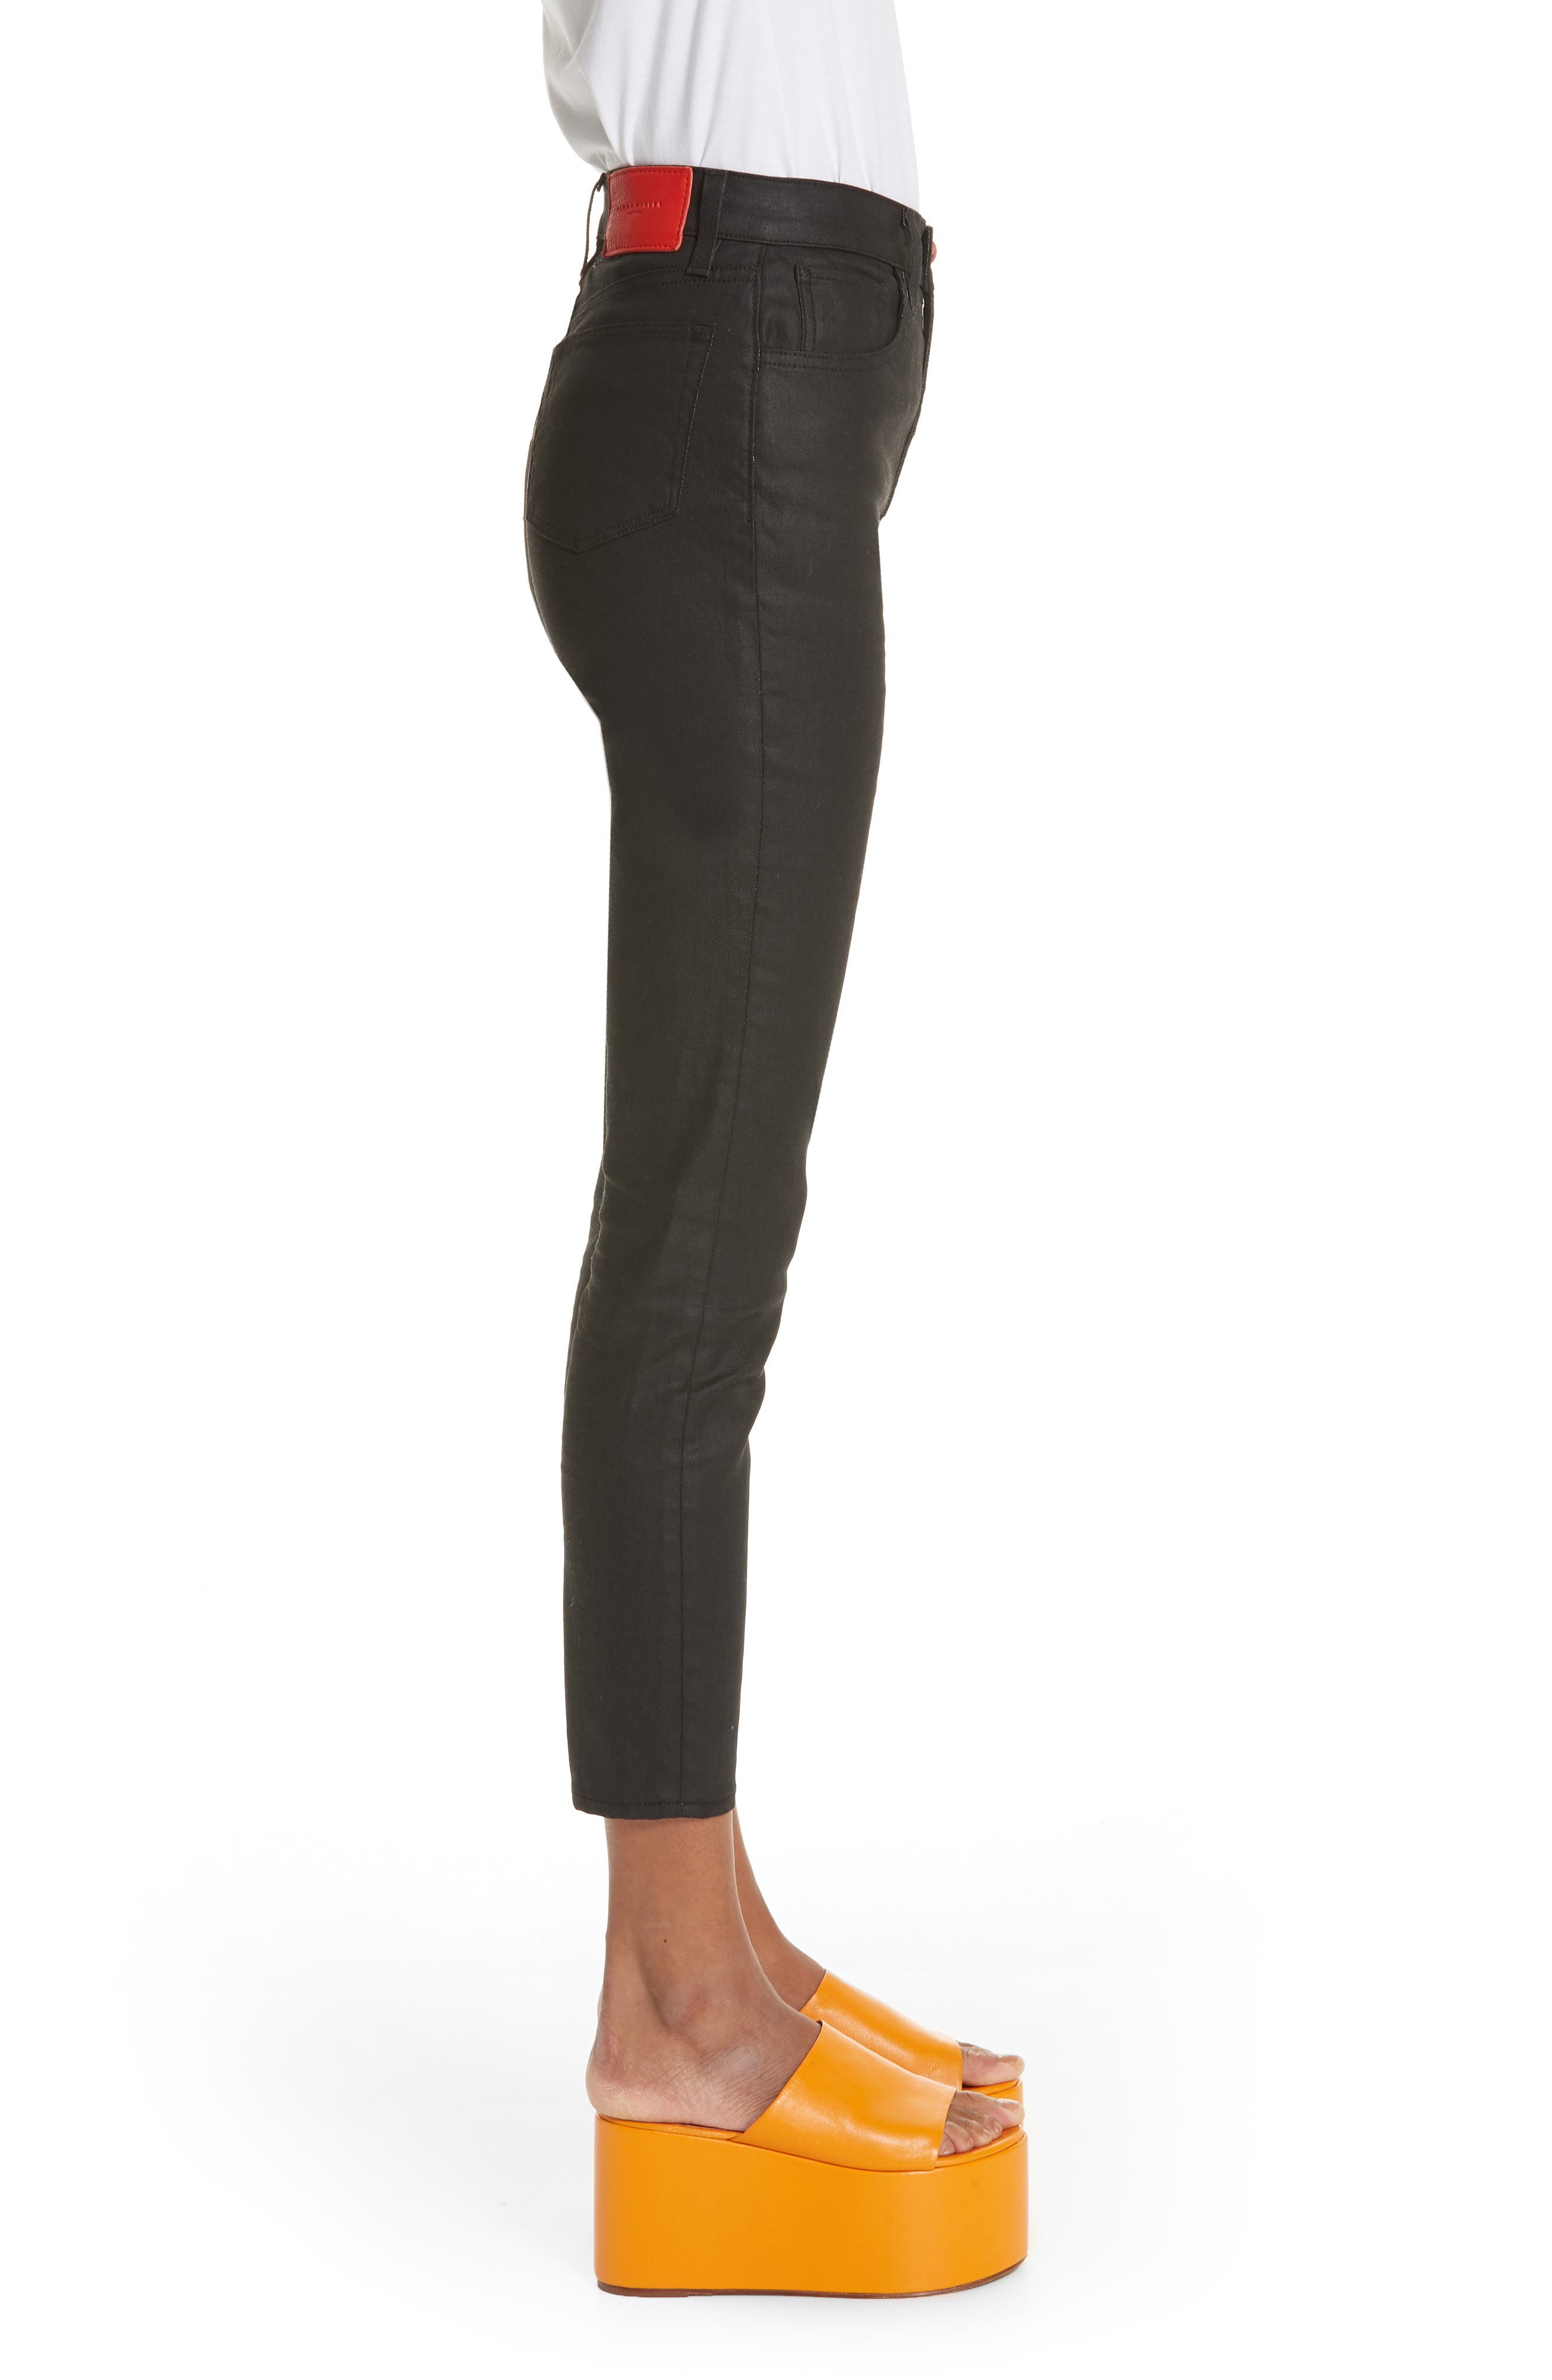 x Paramount Grease Coated Skinny Jeans,                             Alternate thumbnail 3, color,                             DANNY BLACK